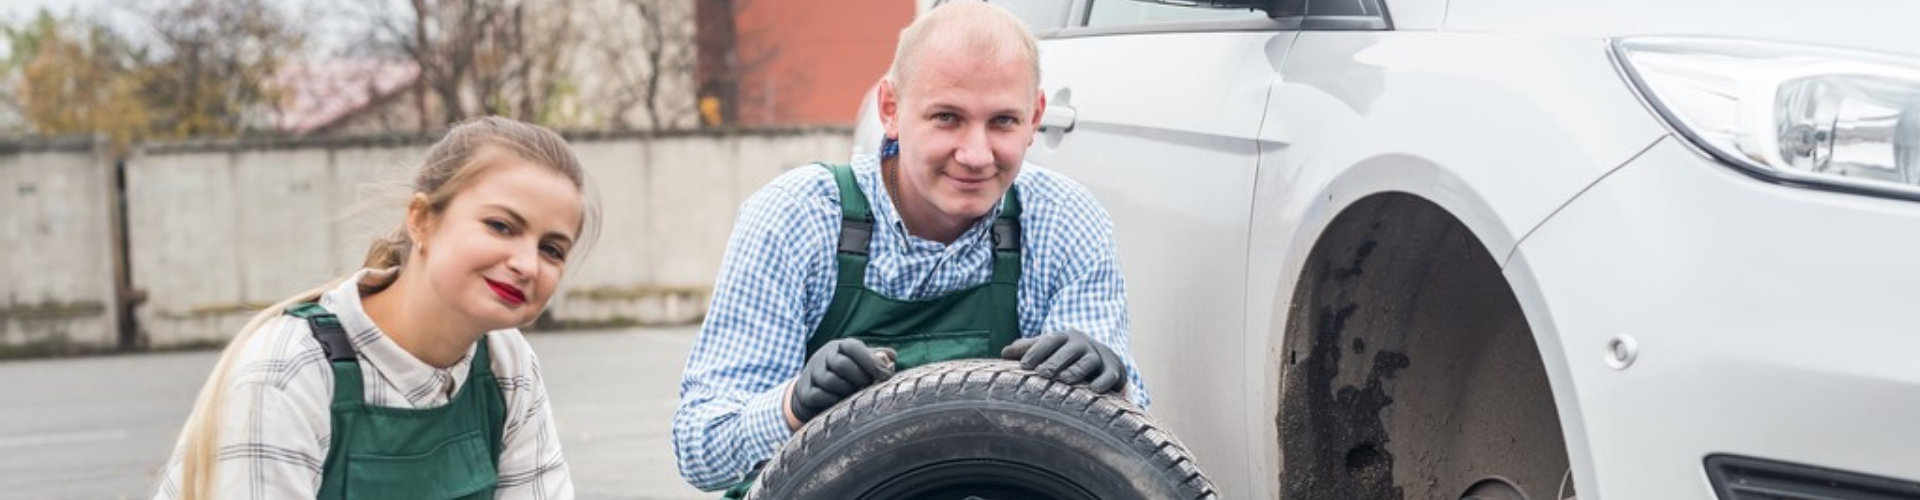 two mechanics at car service with spare wheel